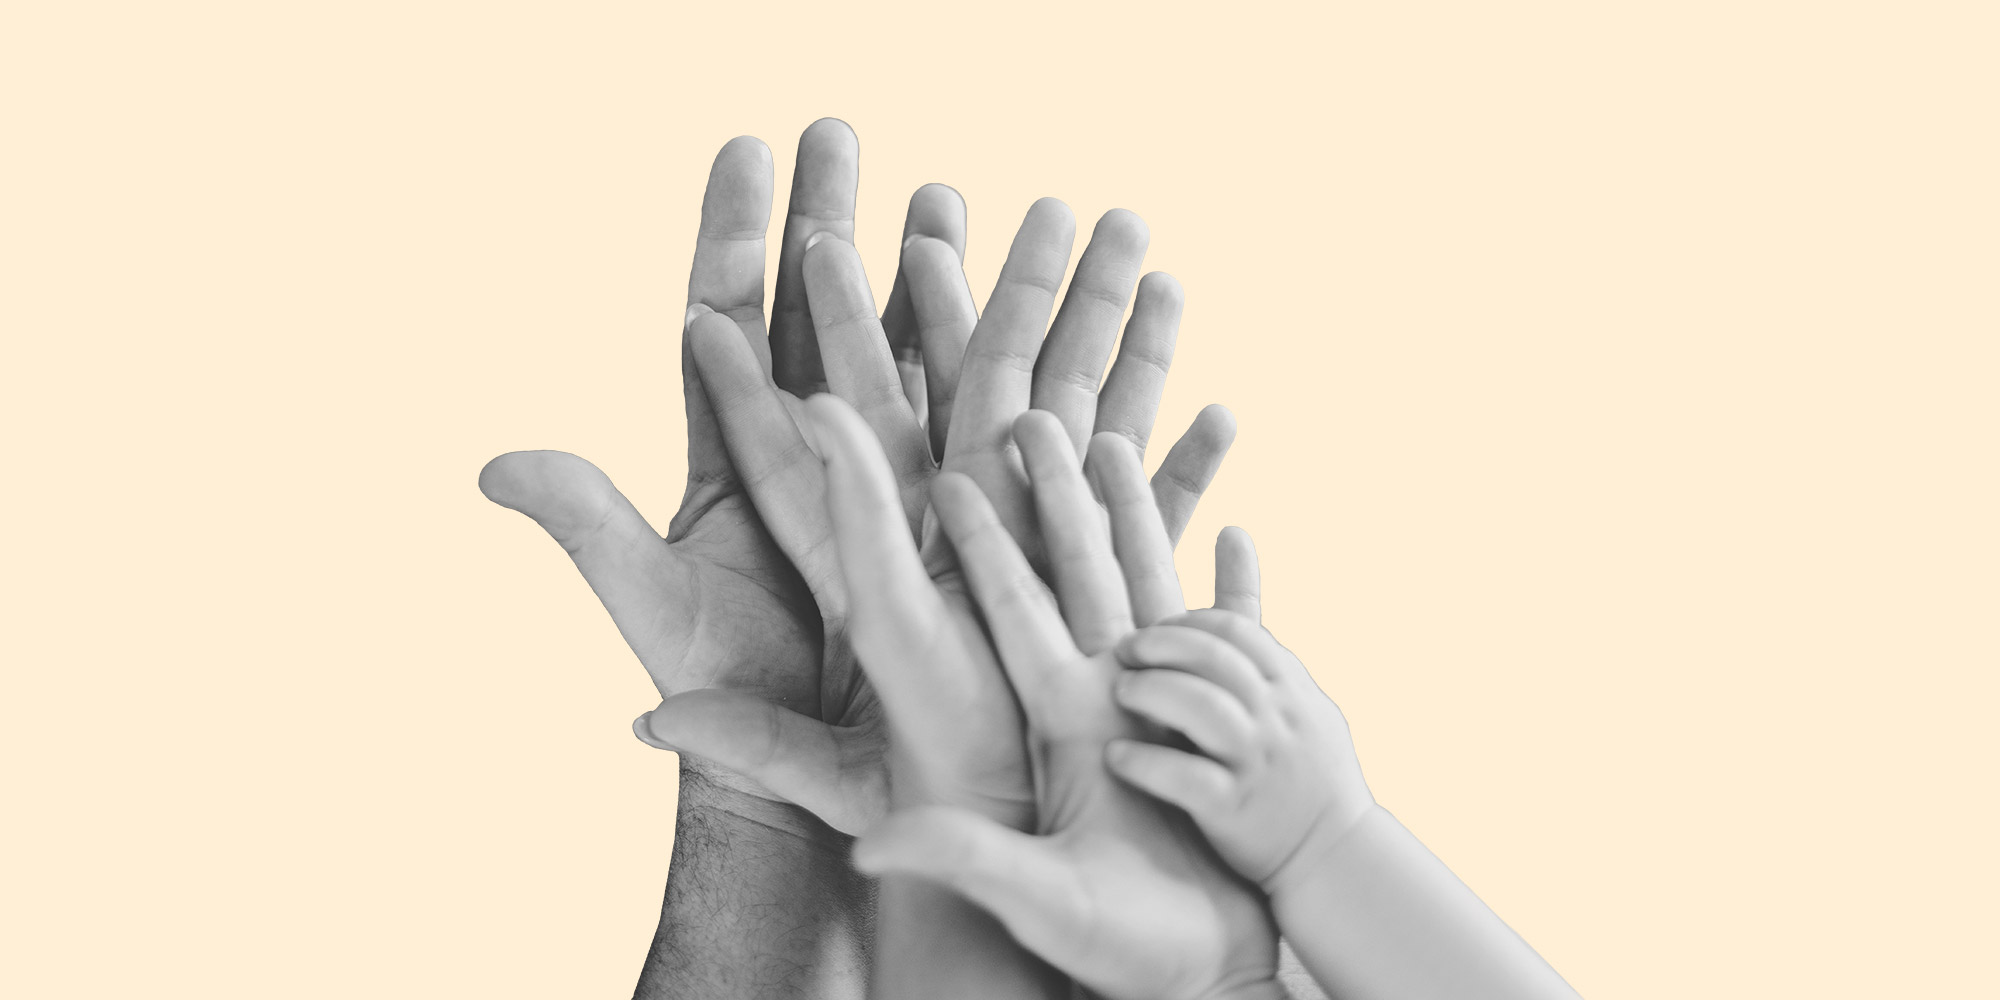 The hands of a man, woman, child, and baby, all pressed together. Parenting in recovery: Communication is key